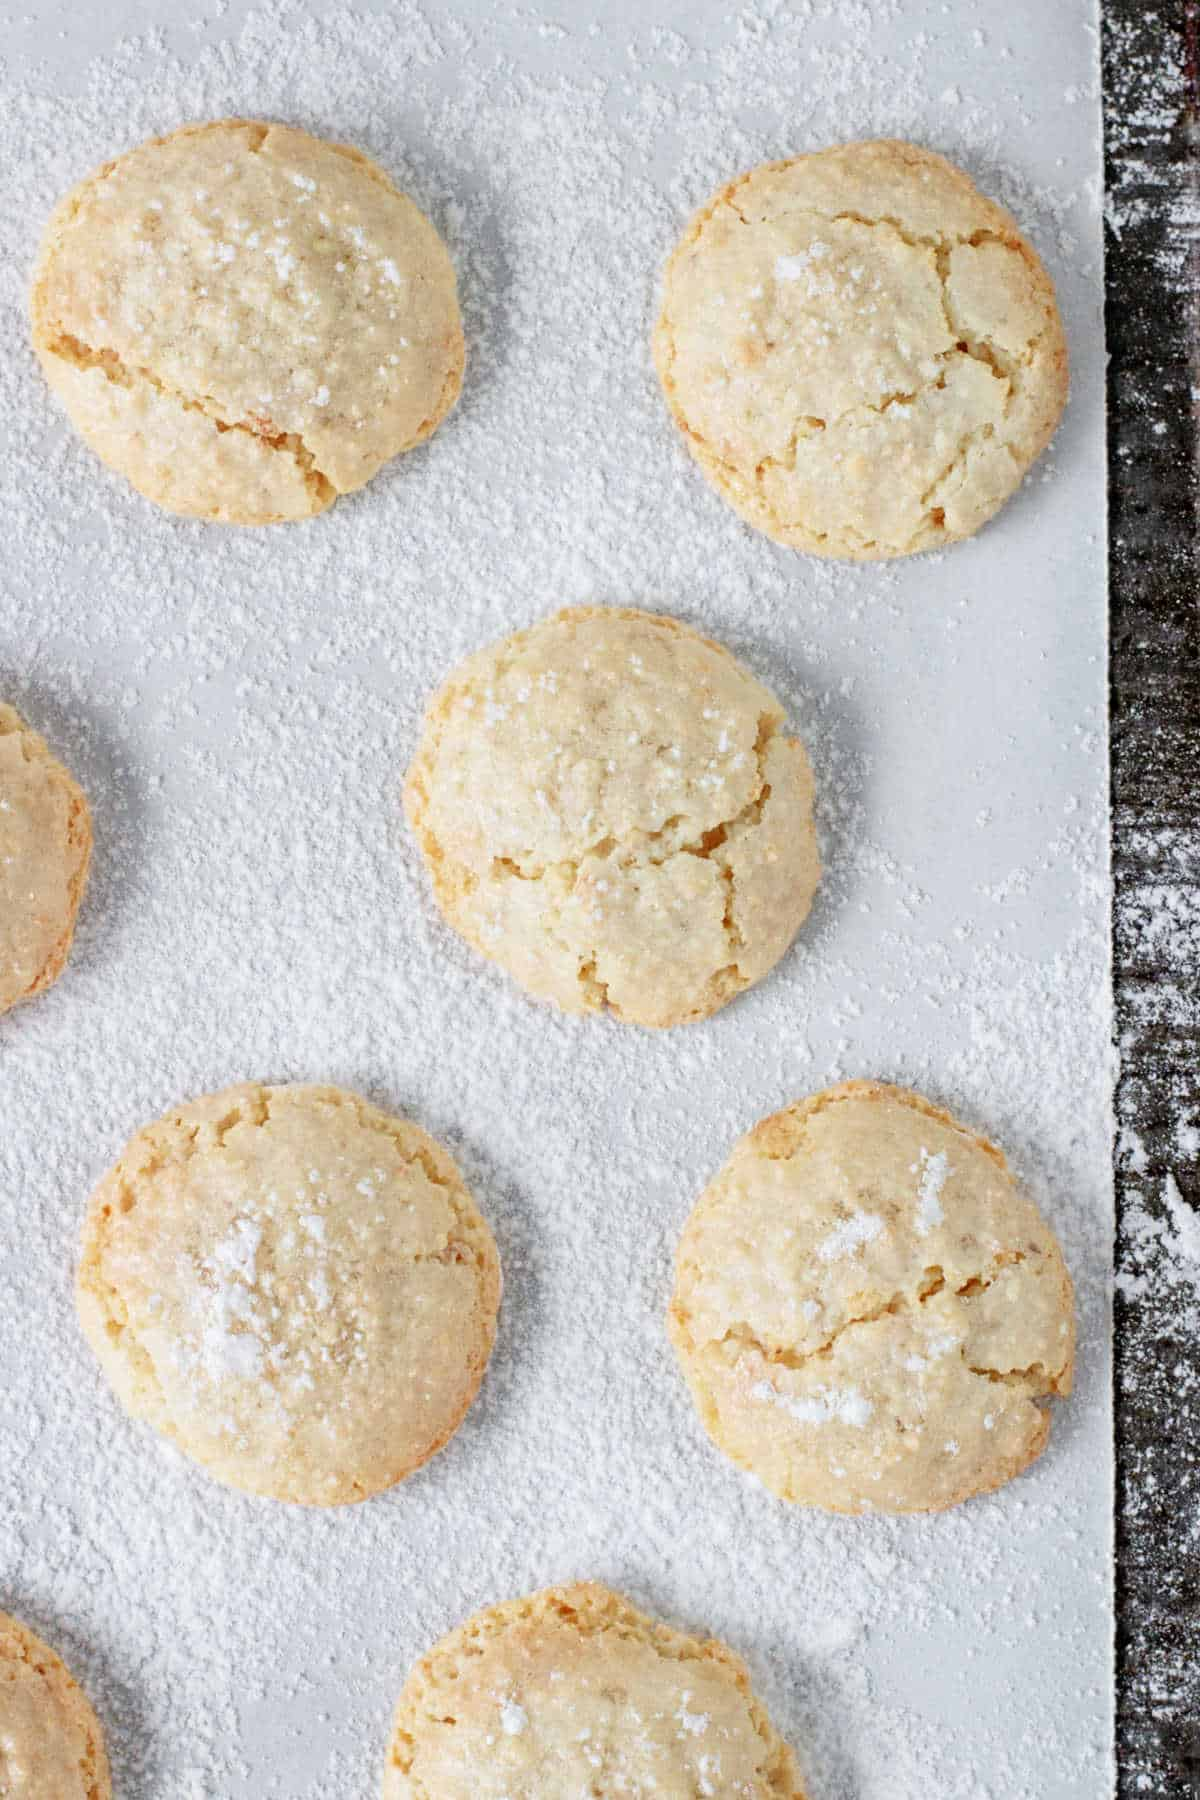 Top view of crackled almond cookies on white parchment paper